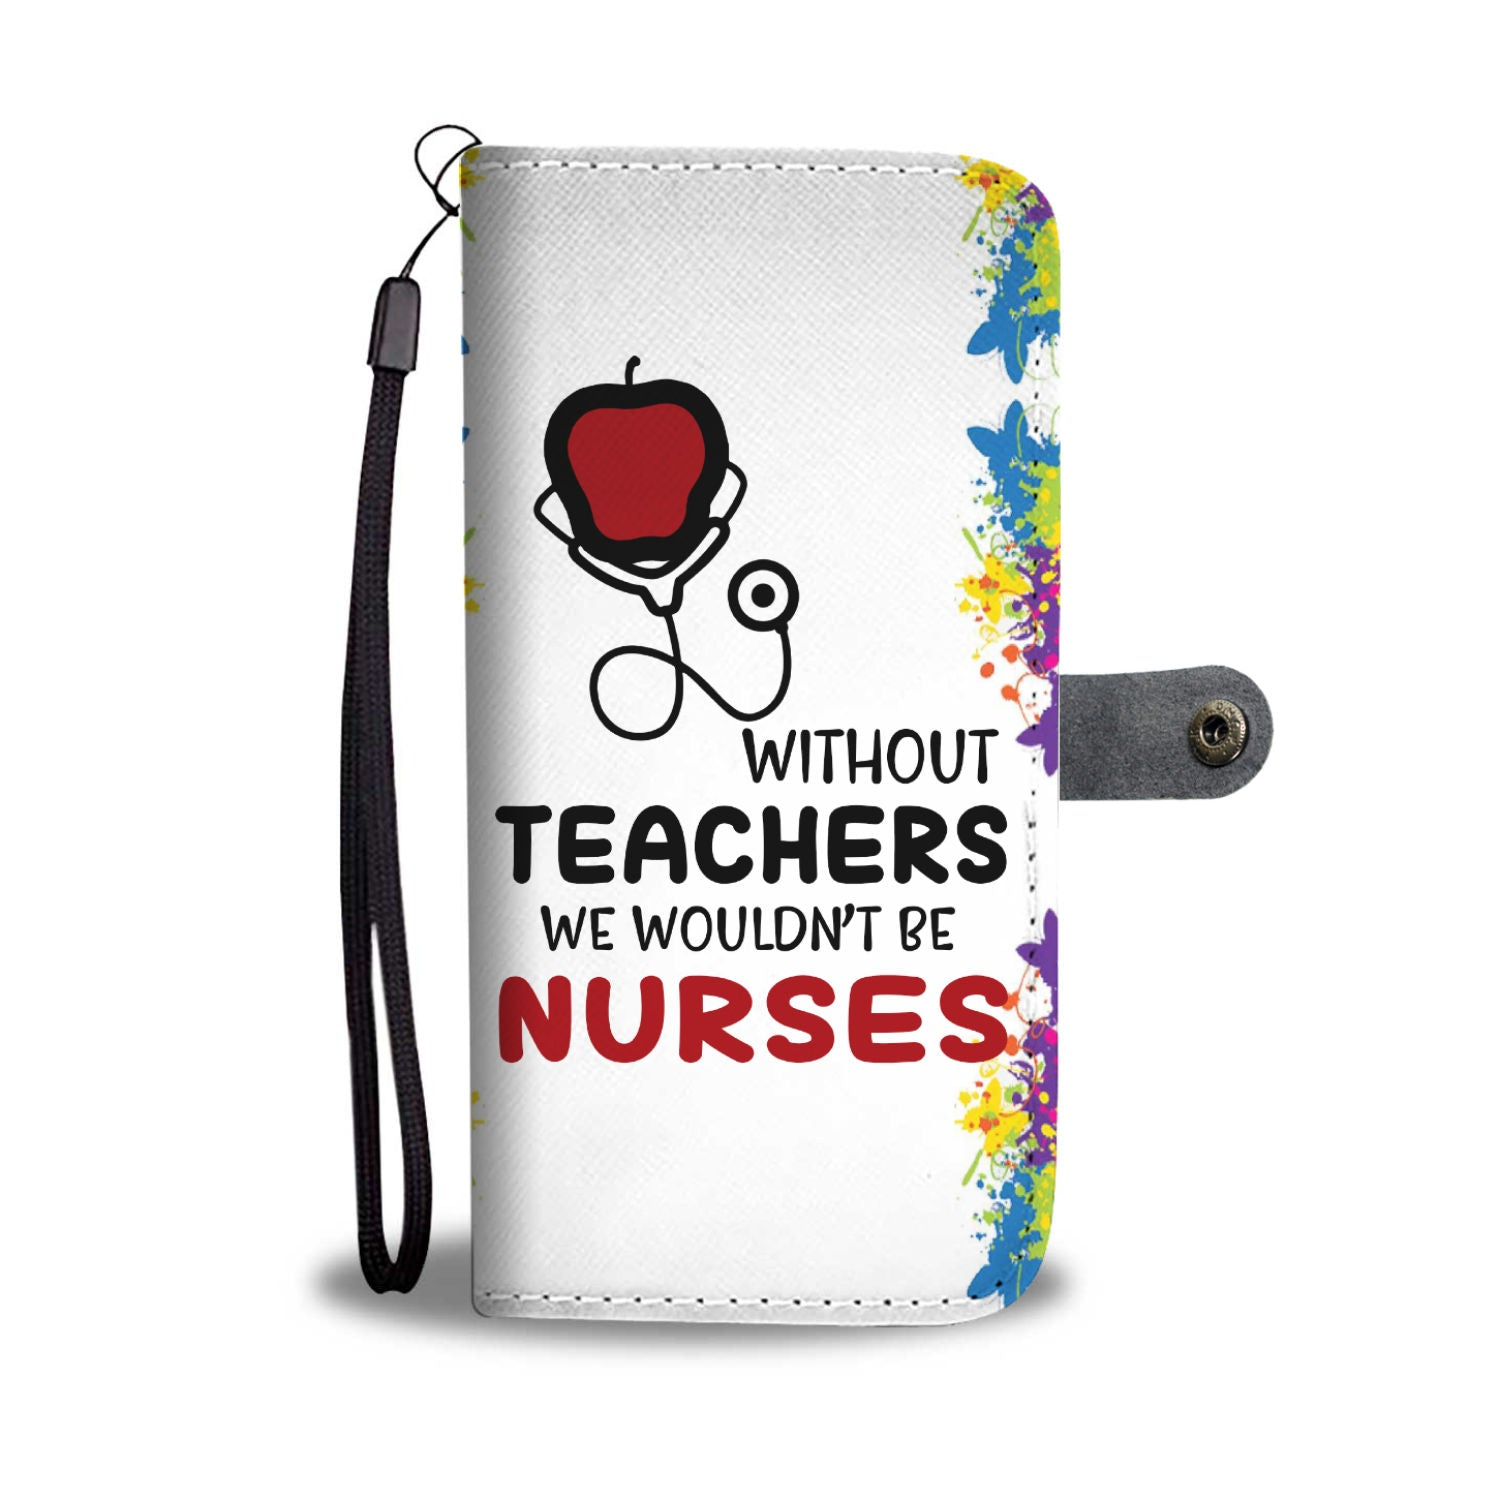 VIRA leather- like wallet case for awesome teachers & nurses